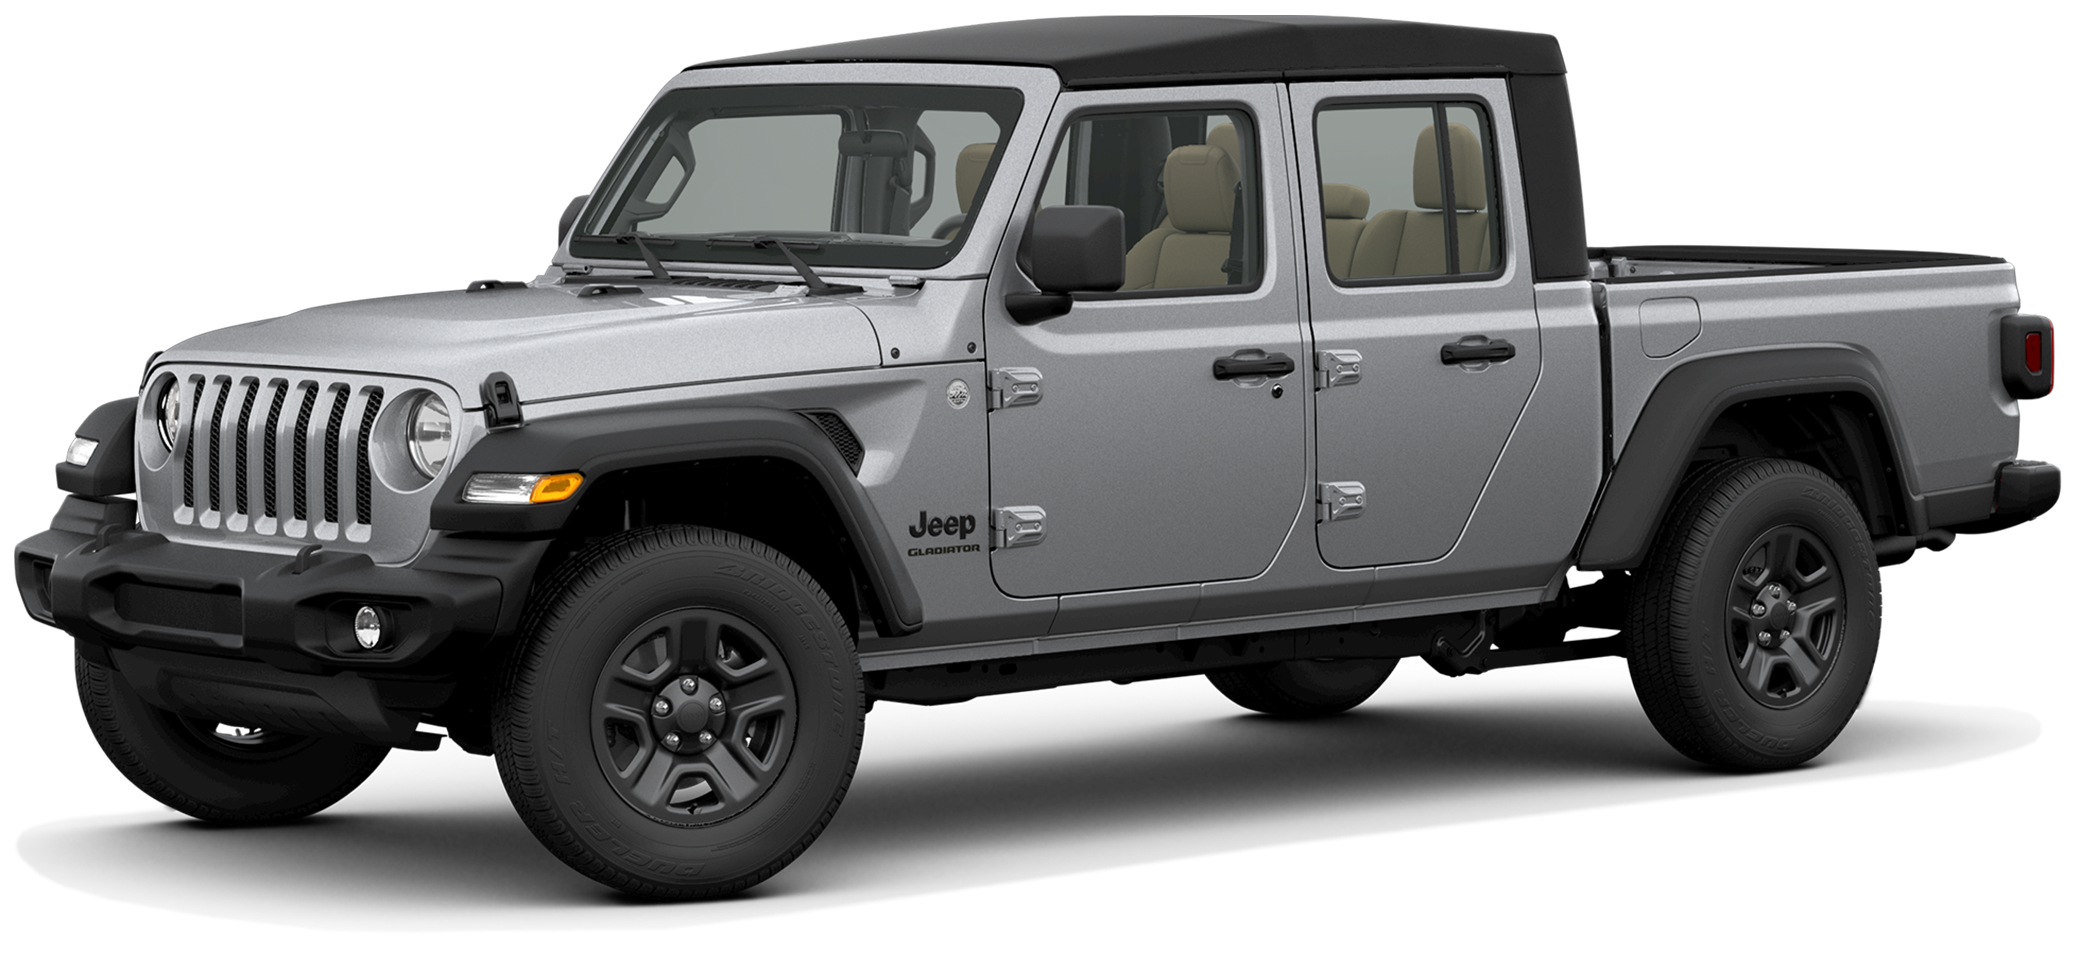 Review & Compare Jeep Gladiator at Larry H. Miller Chrysler Jeep Dodge Ram Surprise